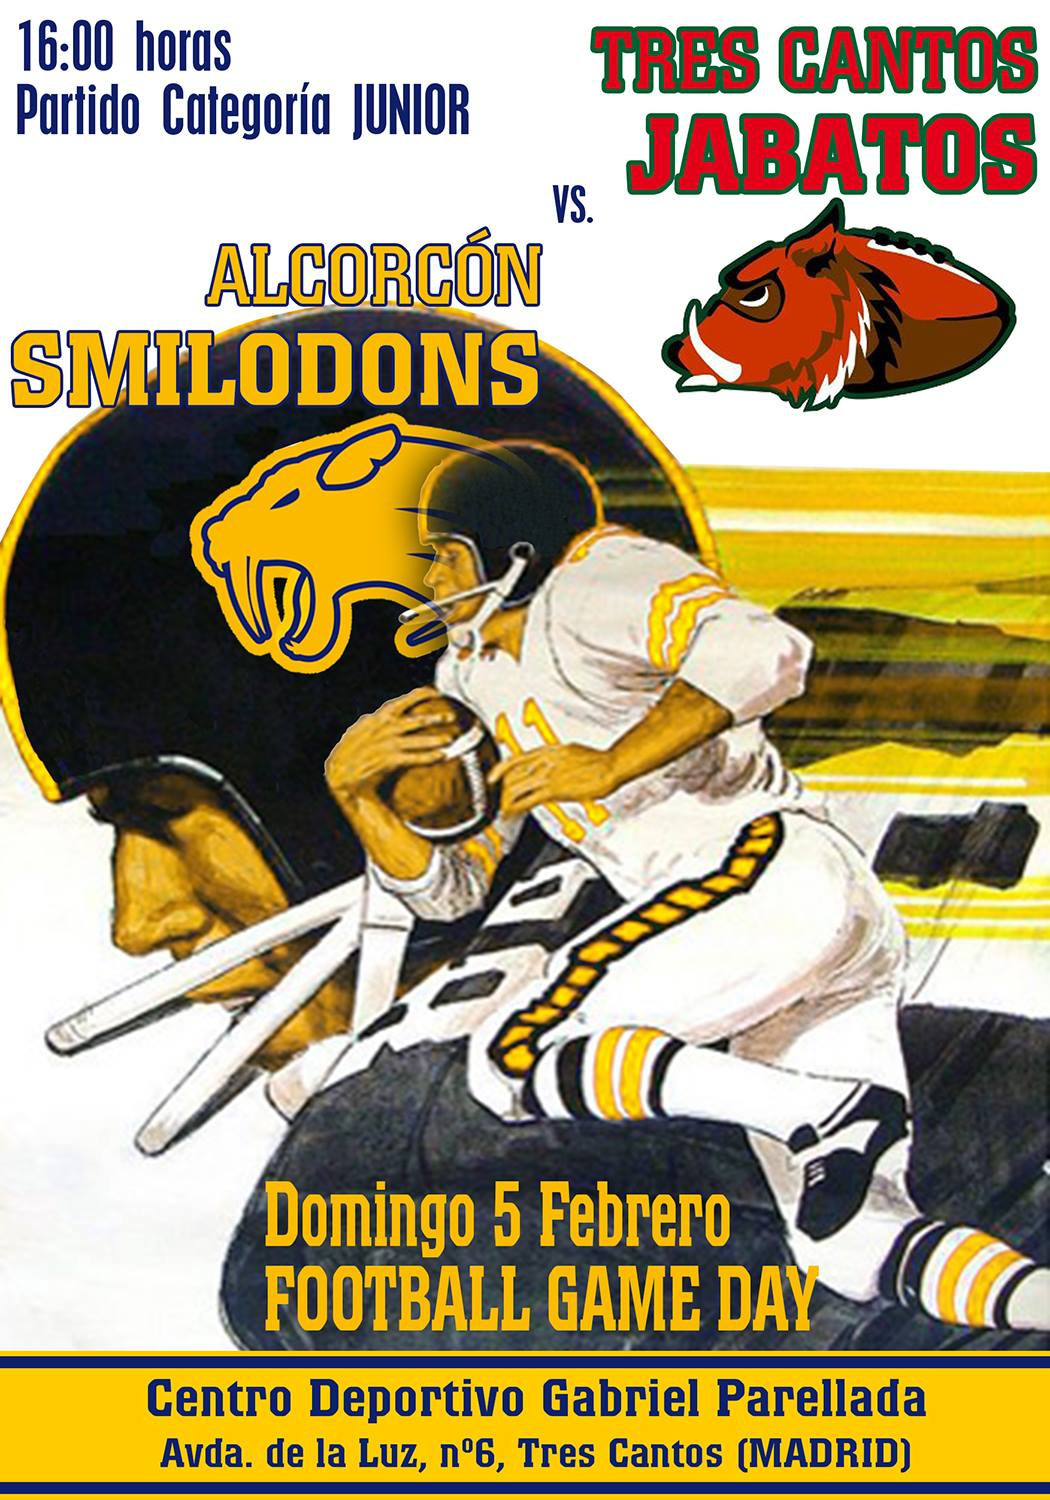 Jabatos Tres Cantos Jr. vs Alcorcón Smilodons Jr.